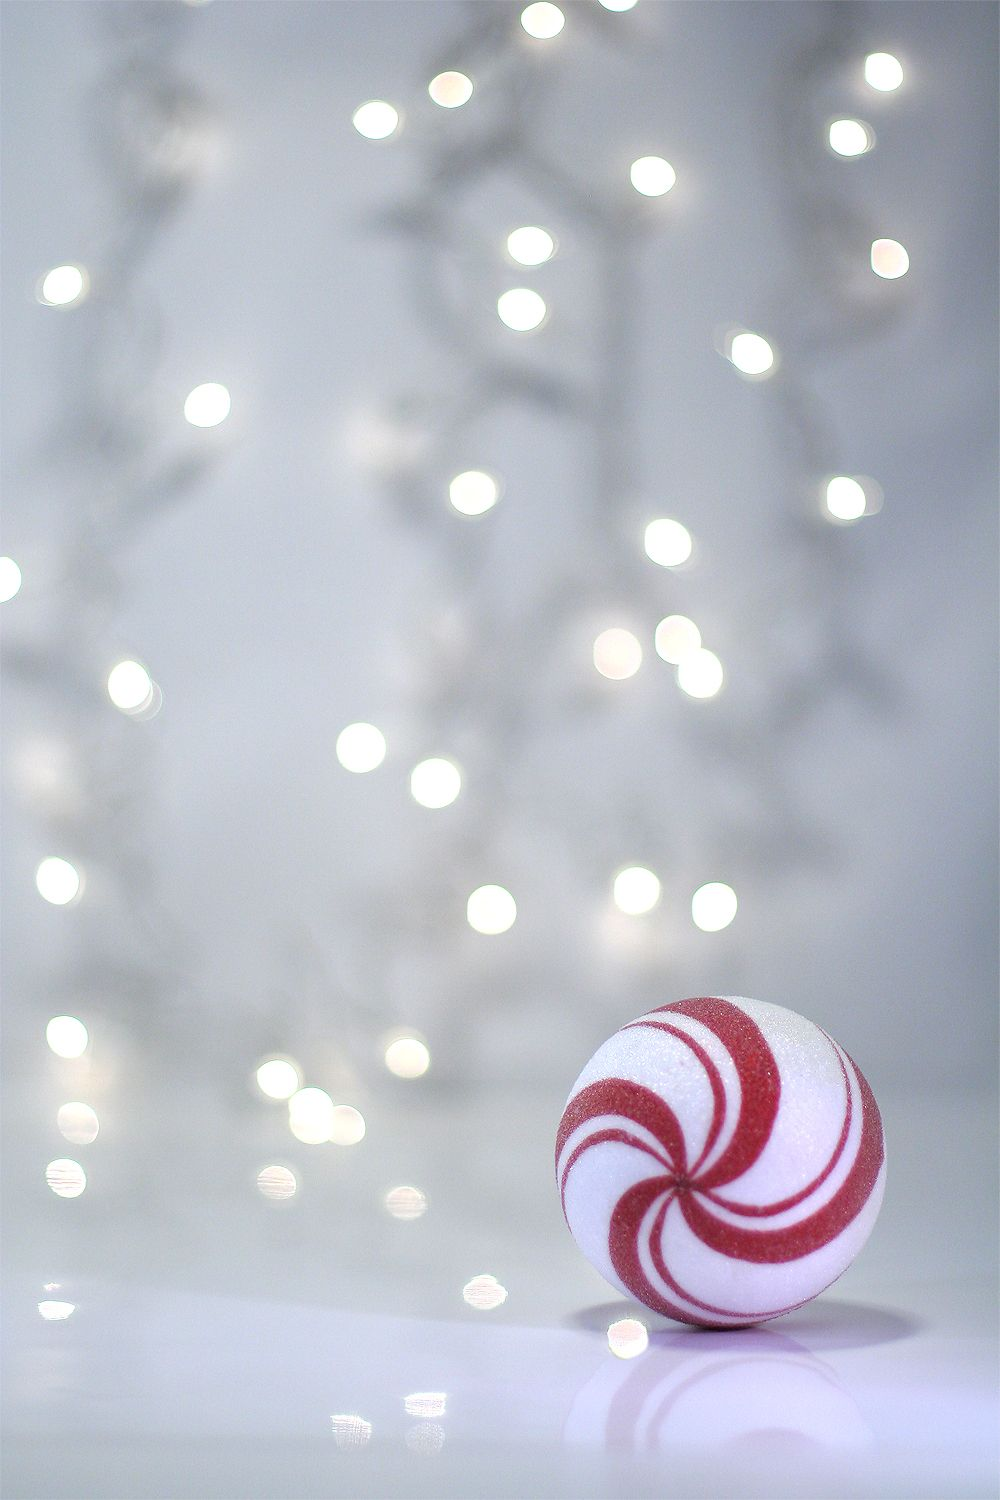 More Christmas bokeh via